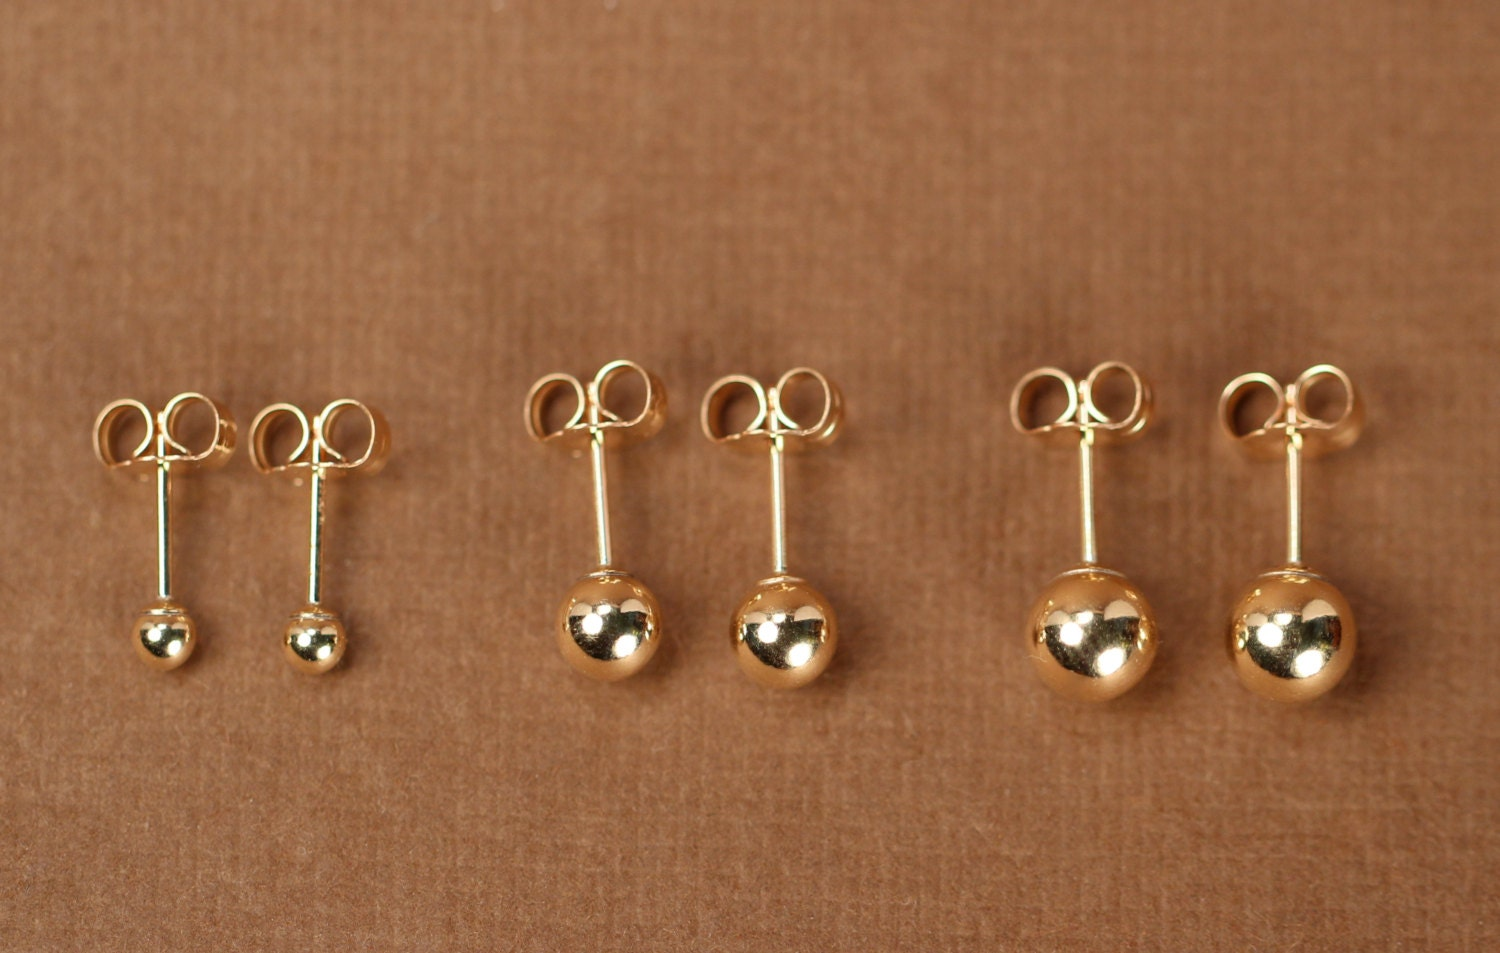 au tiny open womens ear gold jewellery star and minimal products valentina design that filles micro small subtle are earrings heart studs stud les cute revoir in